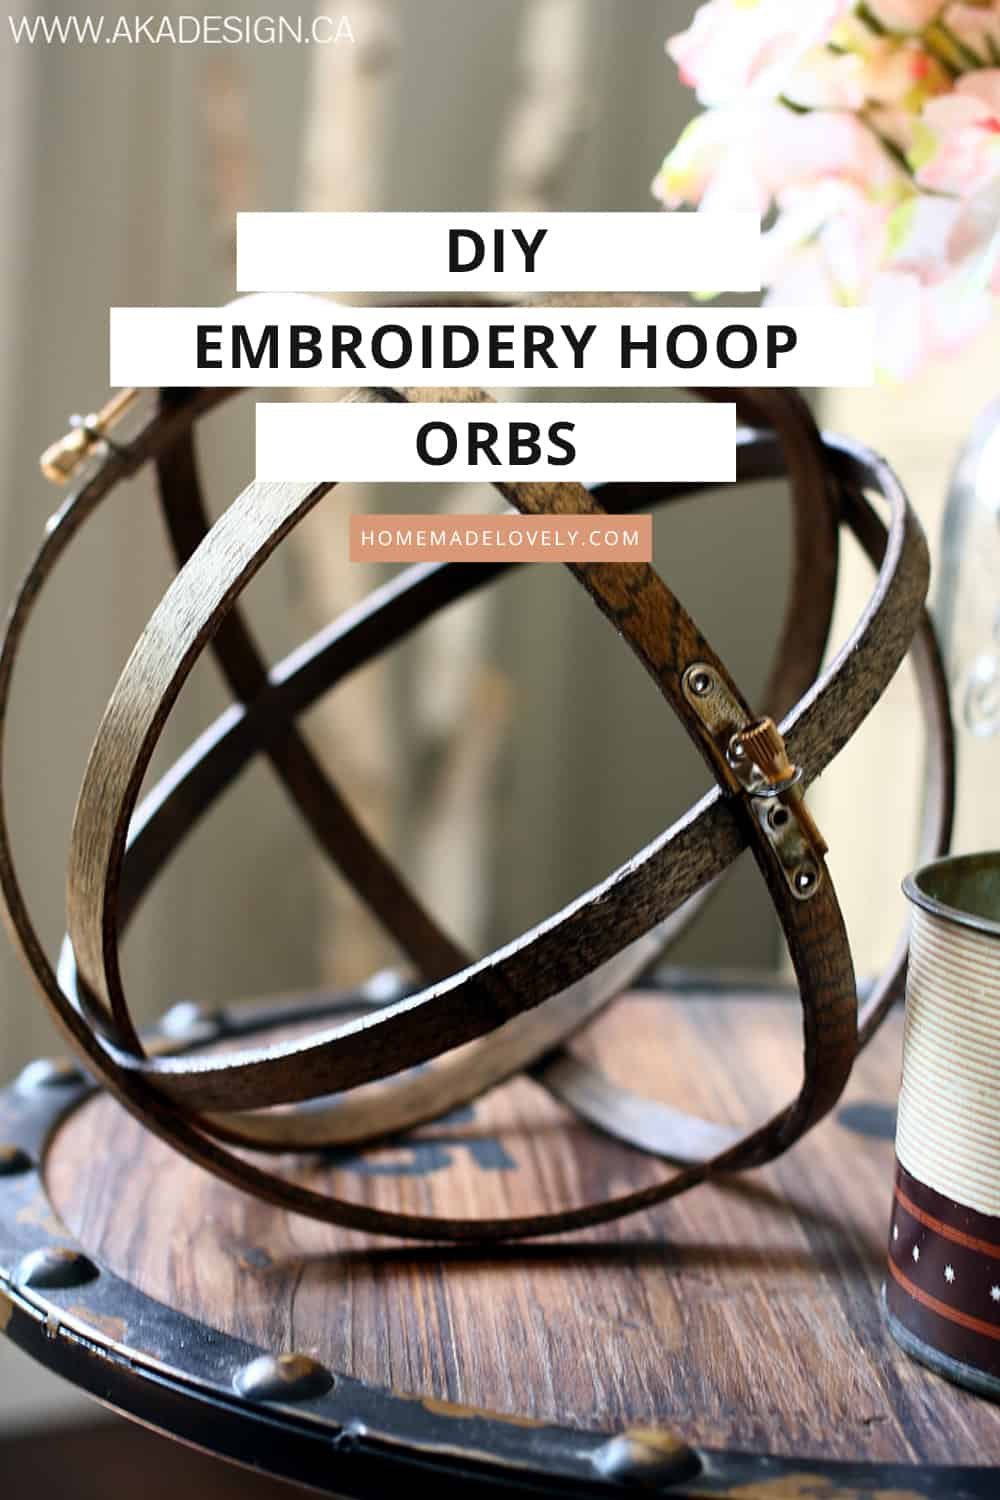 diy embroidery hoop orbs